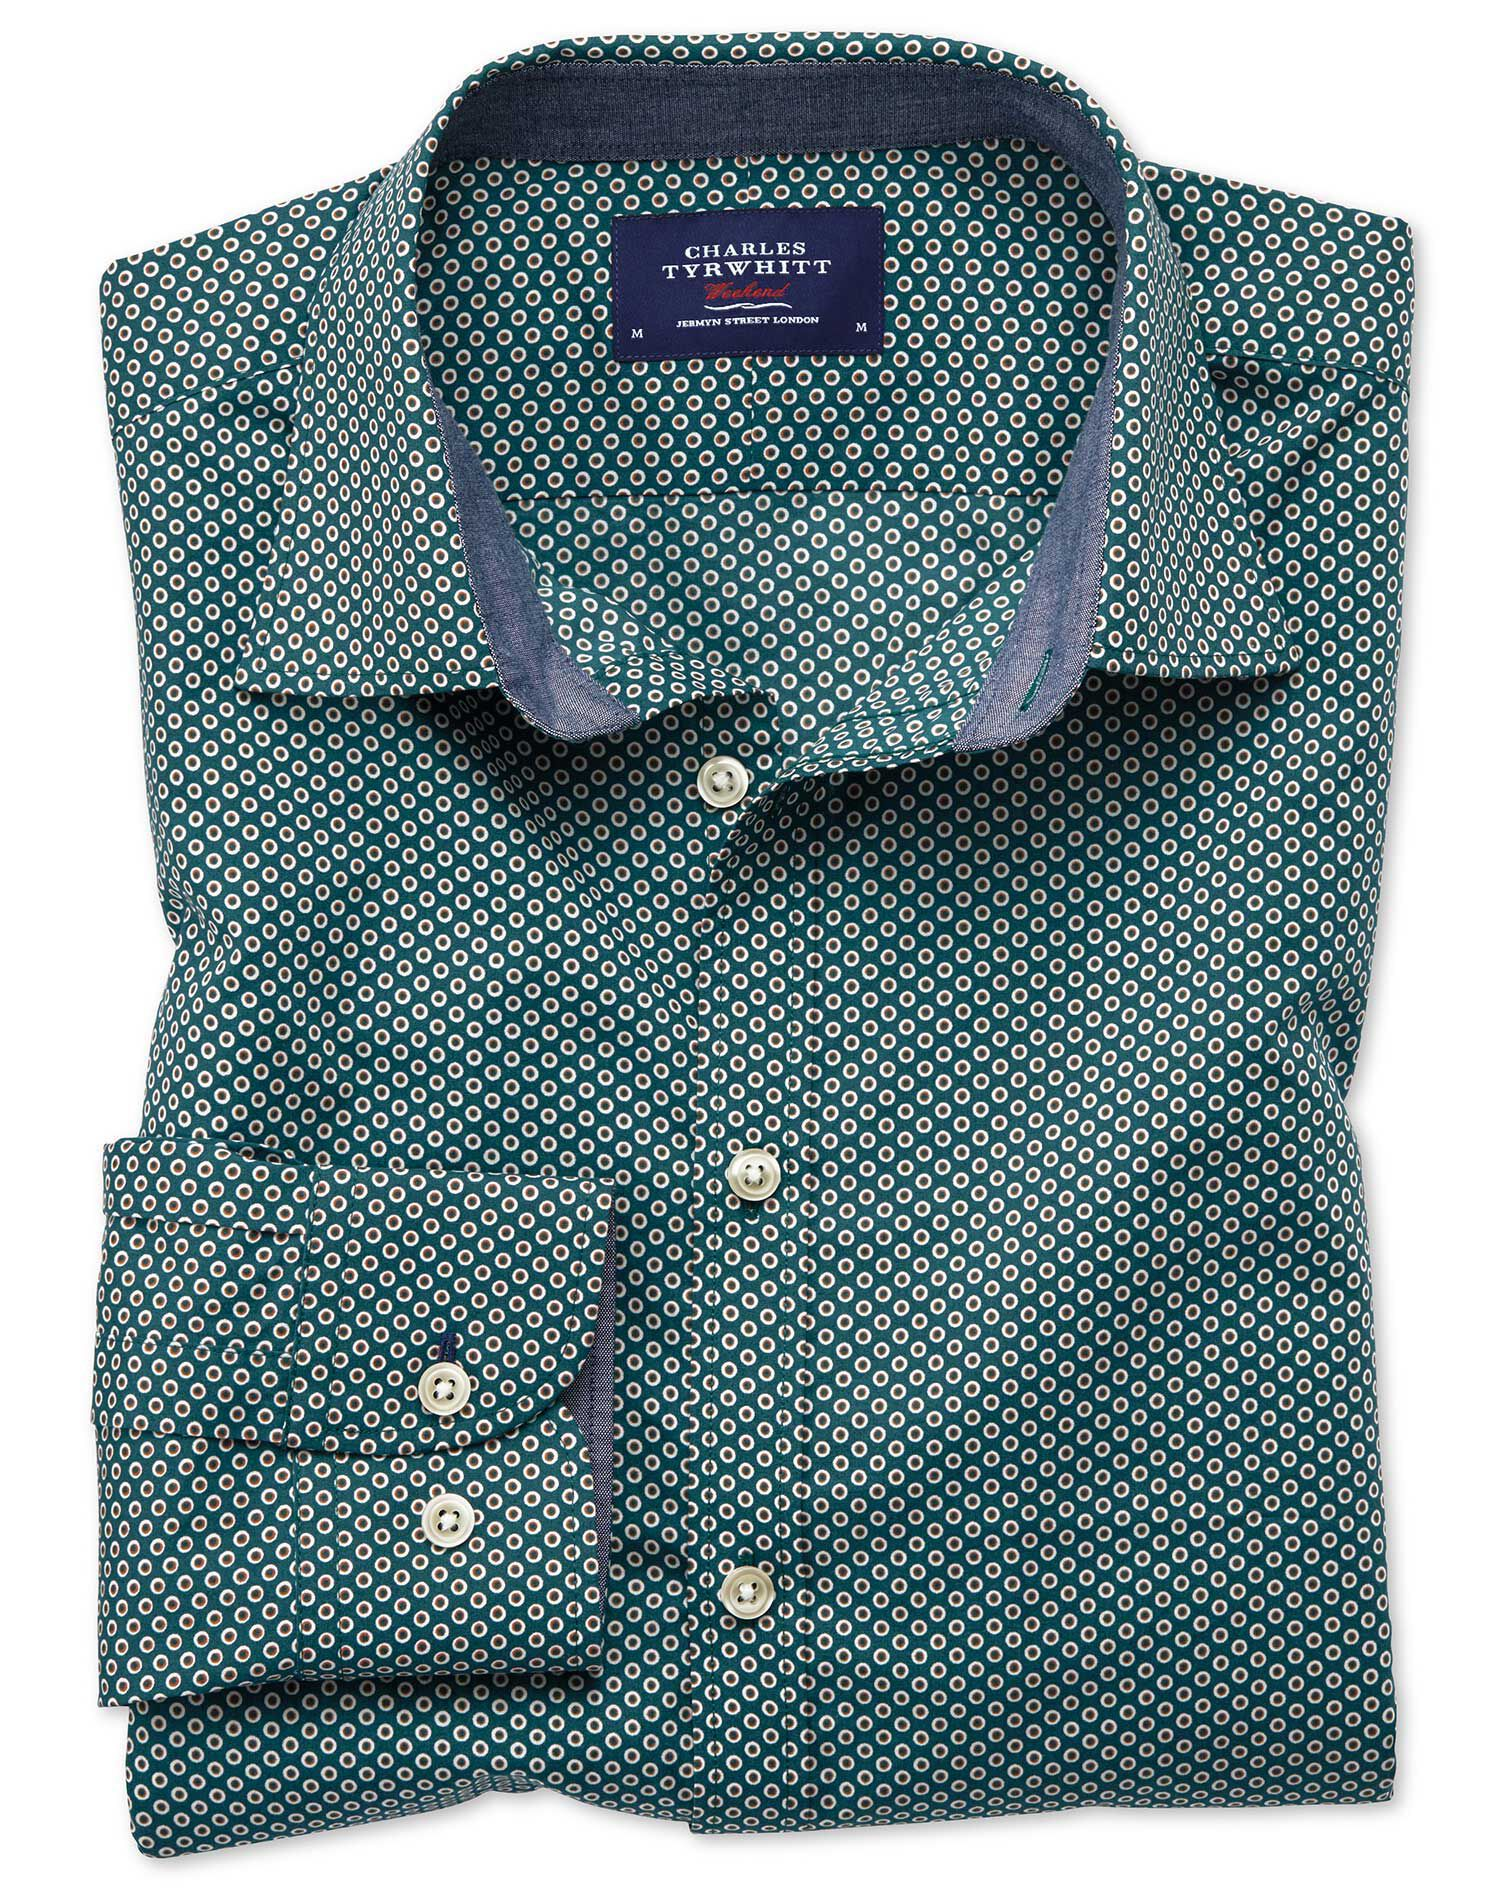 Extra Slim Fit Dark Green Spot Print Cotton Shirt Single Cuff Size Small by Charles Tyrwhitt